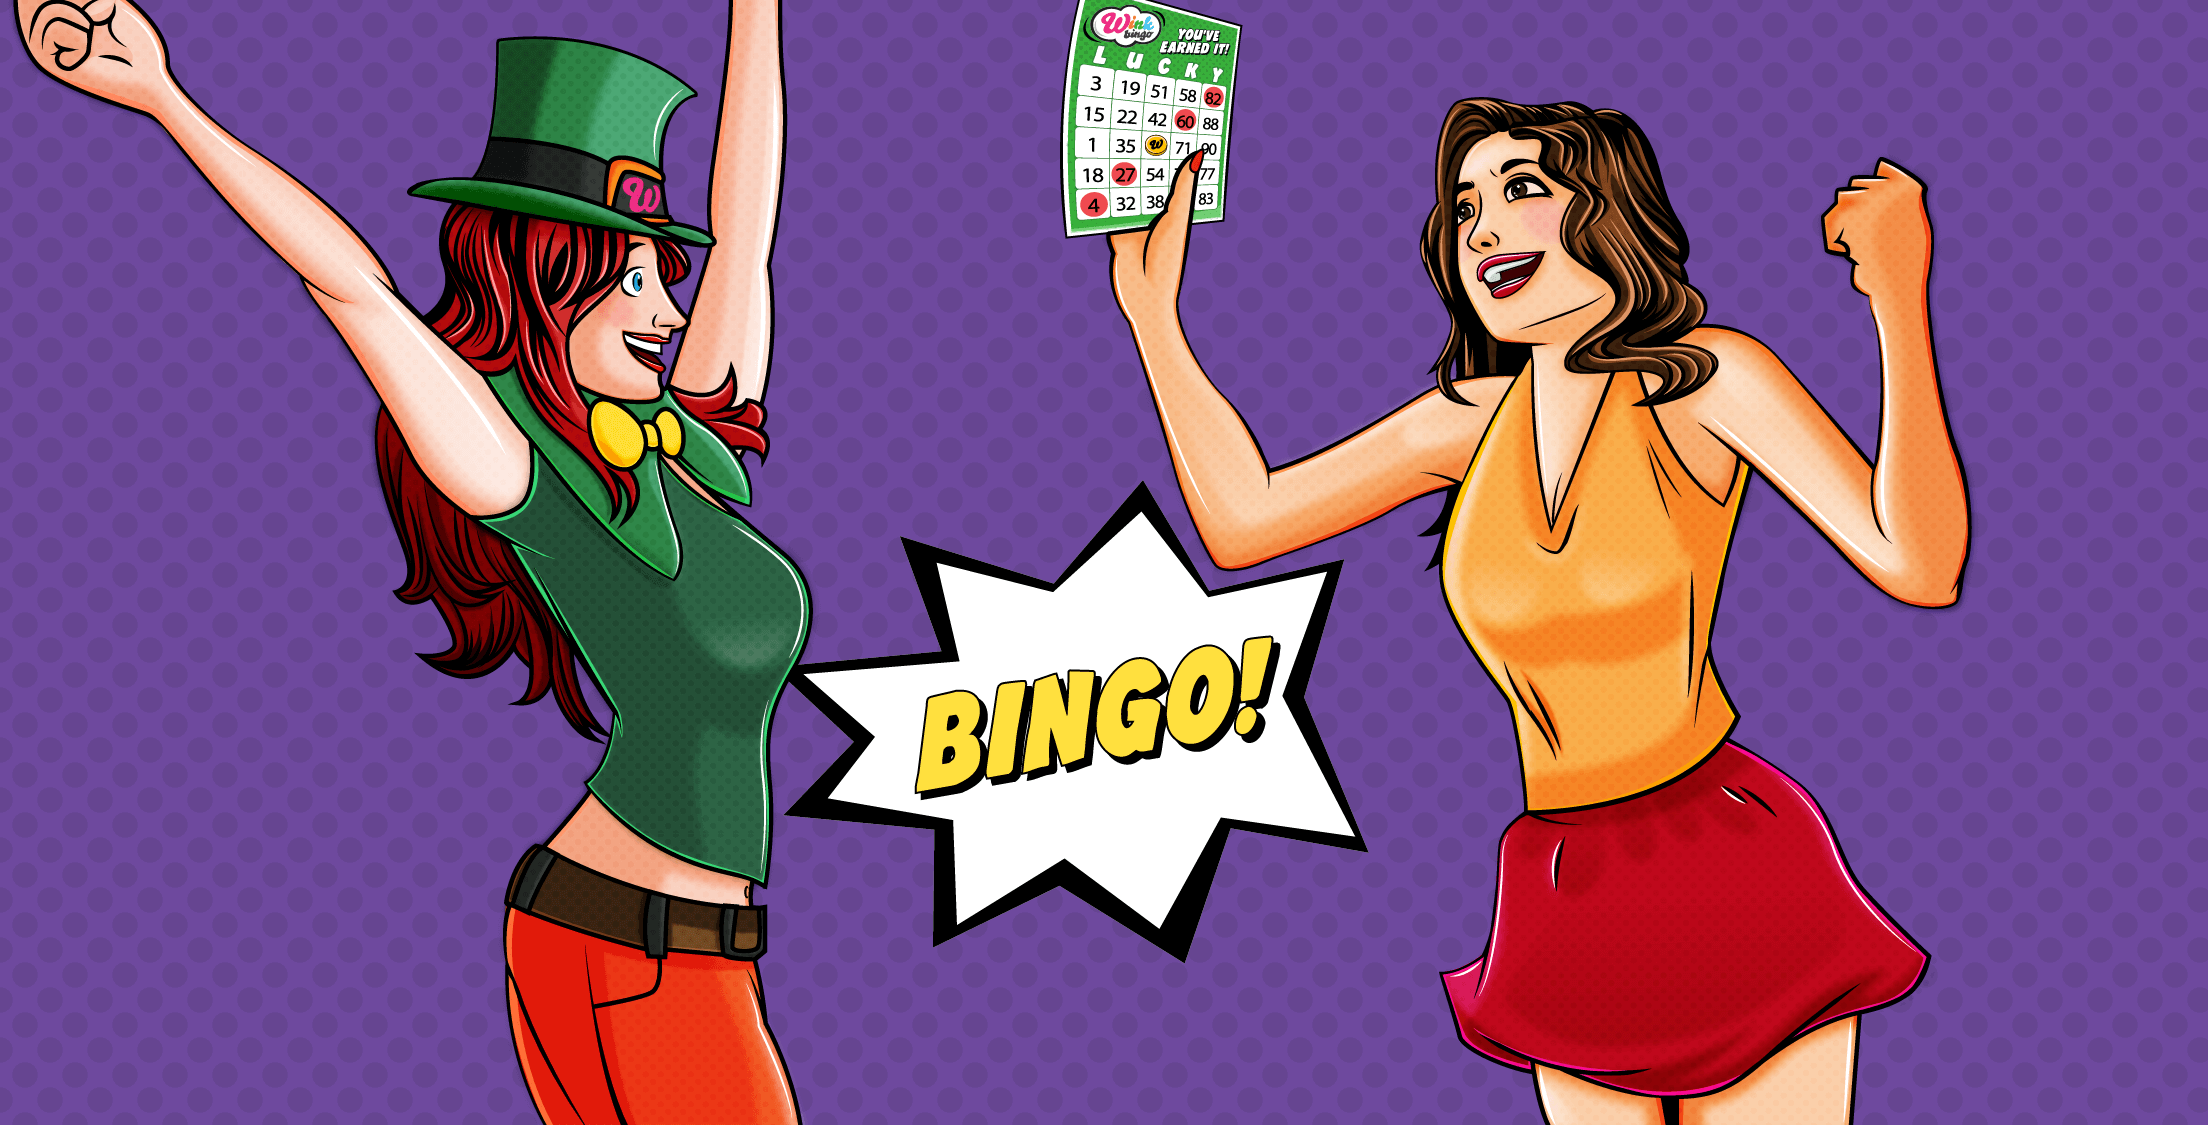 St. Patricks Day Bingo Winner